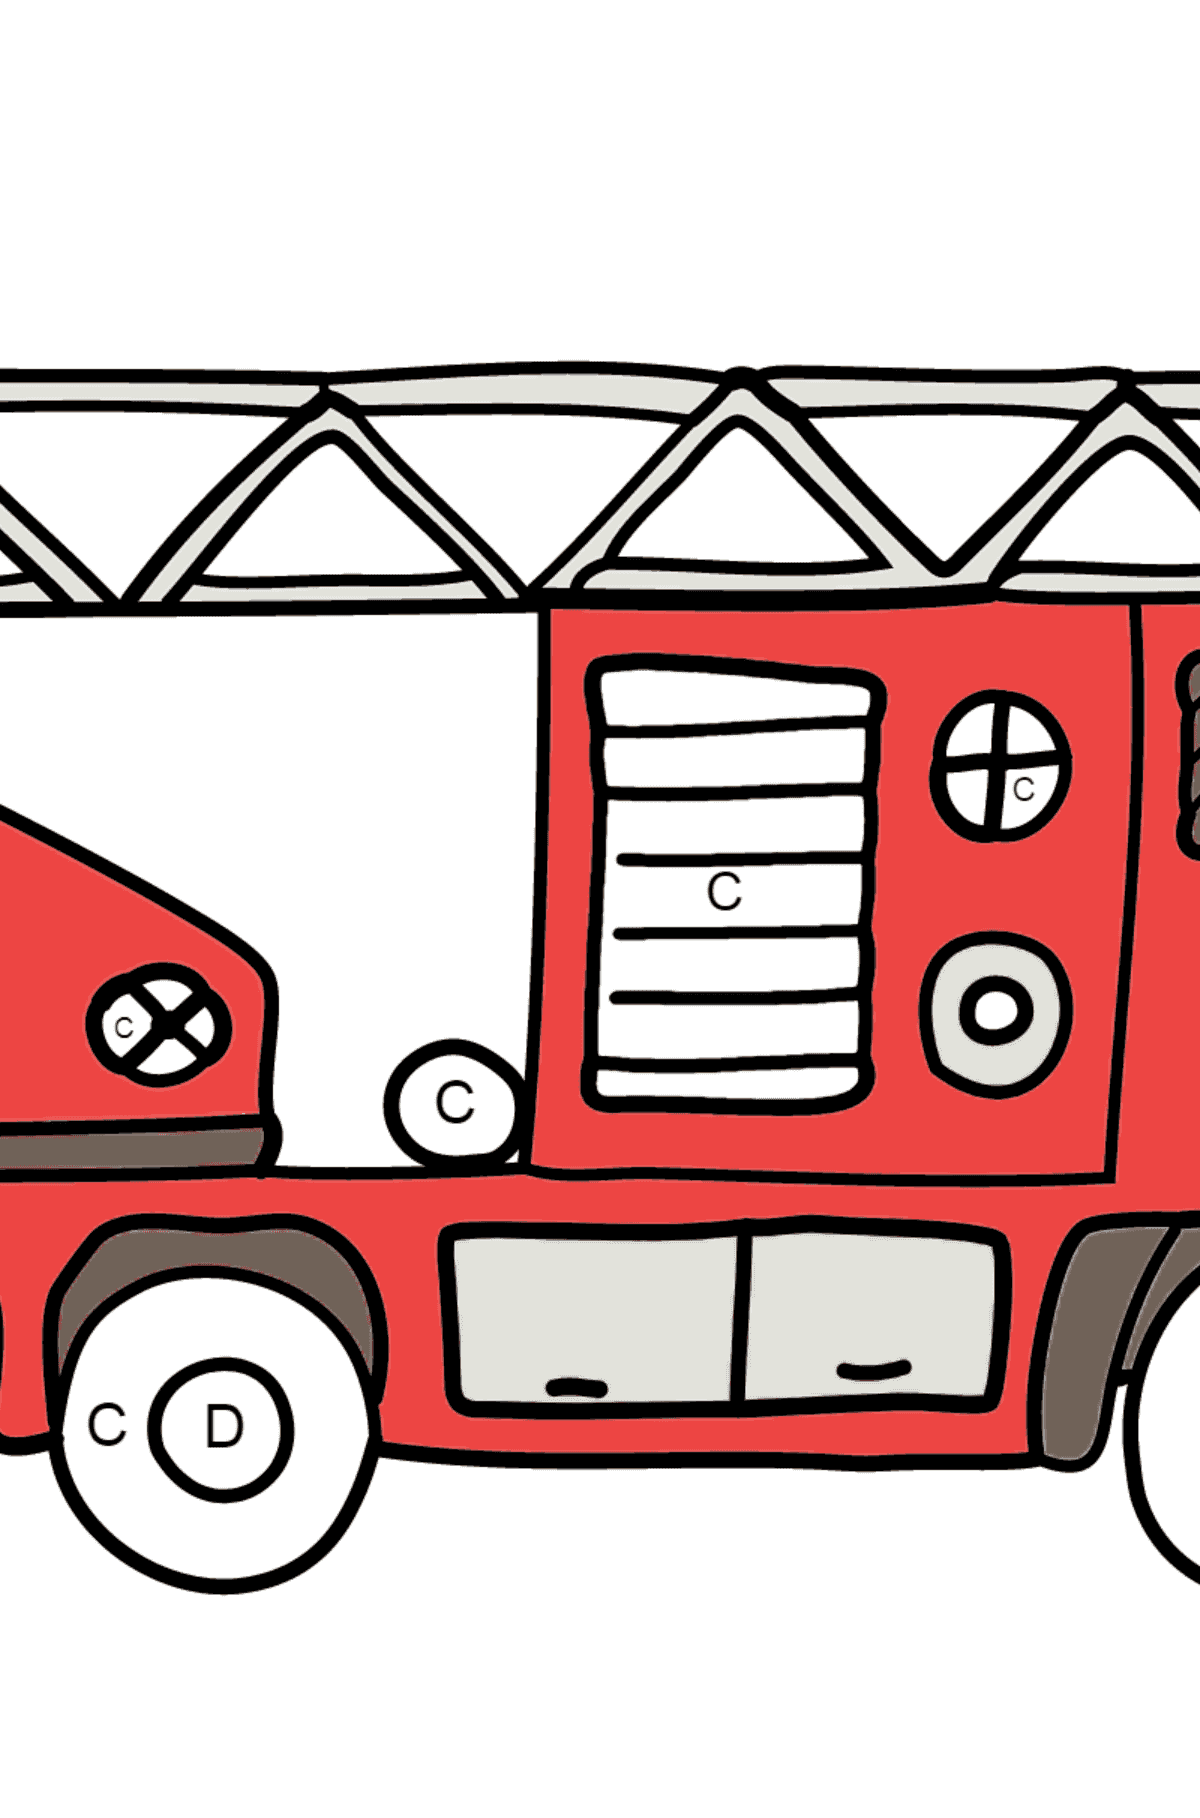 Coloring Page - A Fire Truck for Children  - Color by Letters